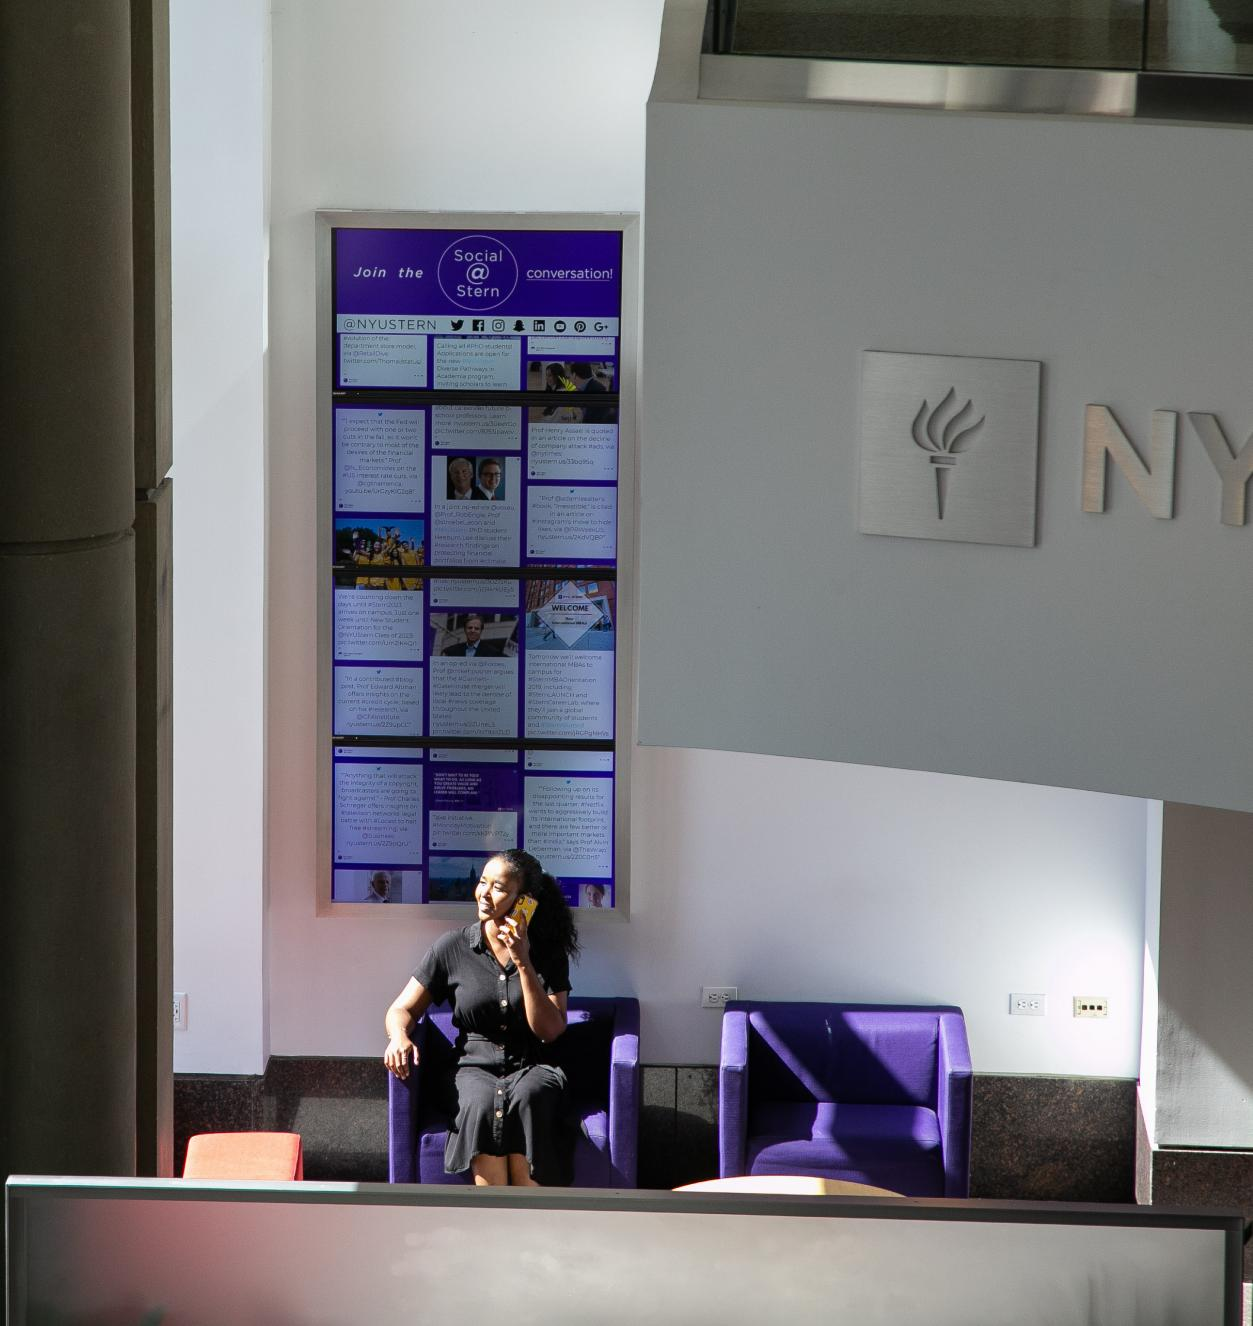 Woman on the phone sitting in a purple armchair in front of a screen displaying info cards with the NYU logo visible offside